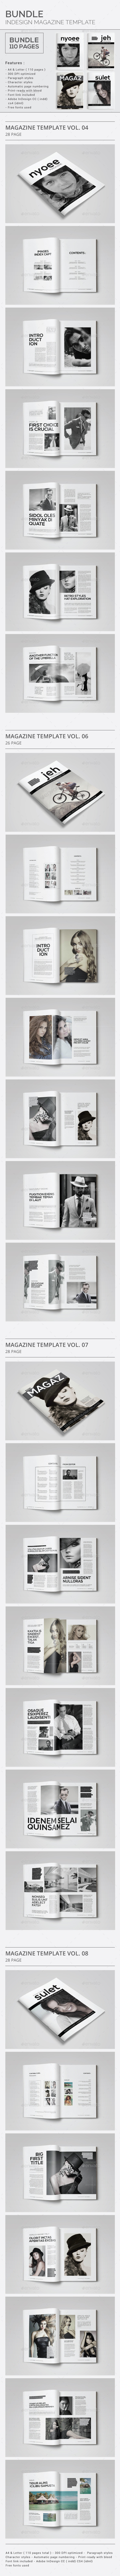 GraphicRiver Indesign Magazine Bundle 9755756